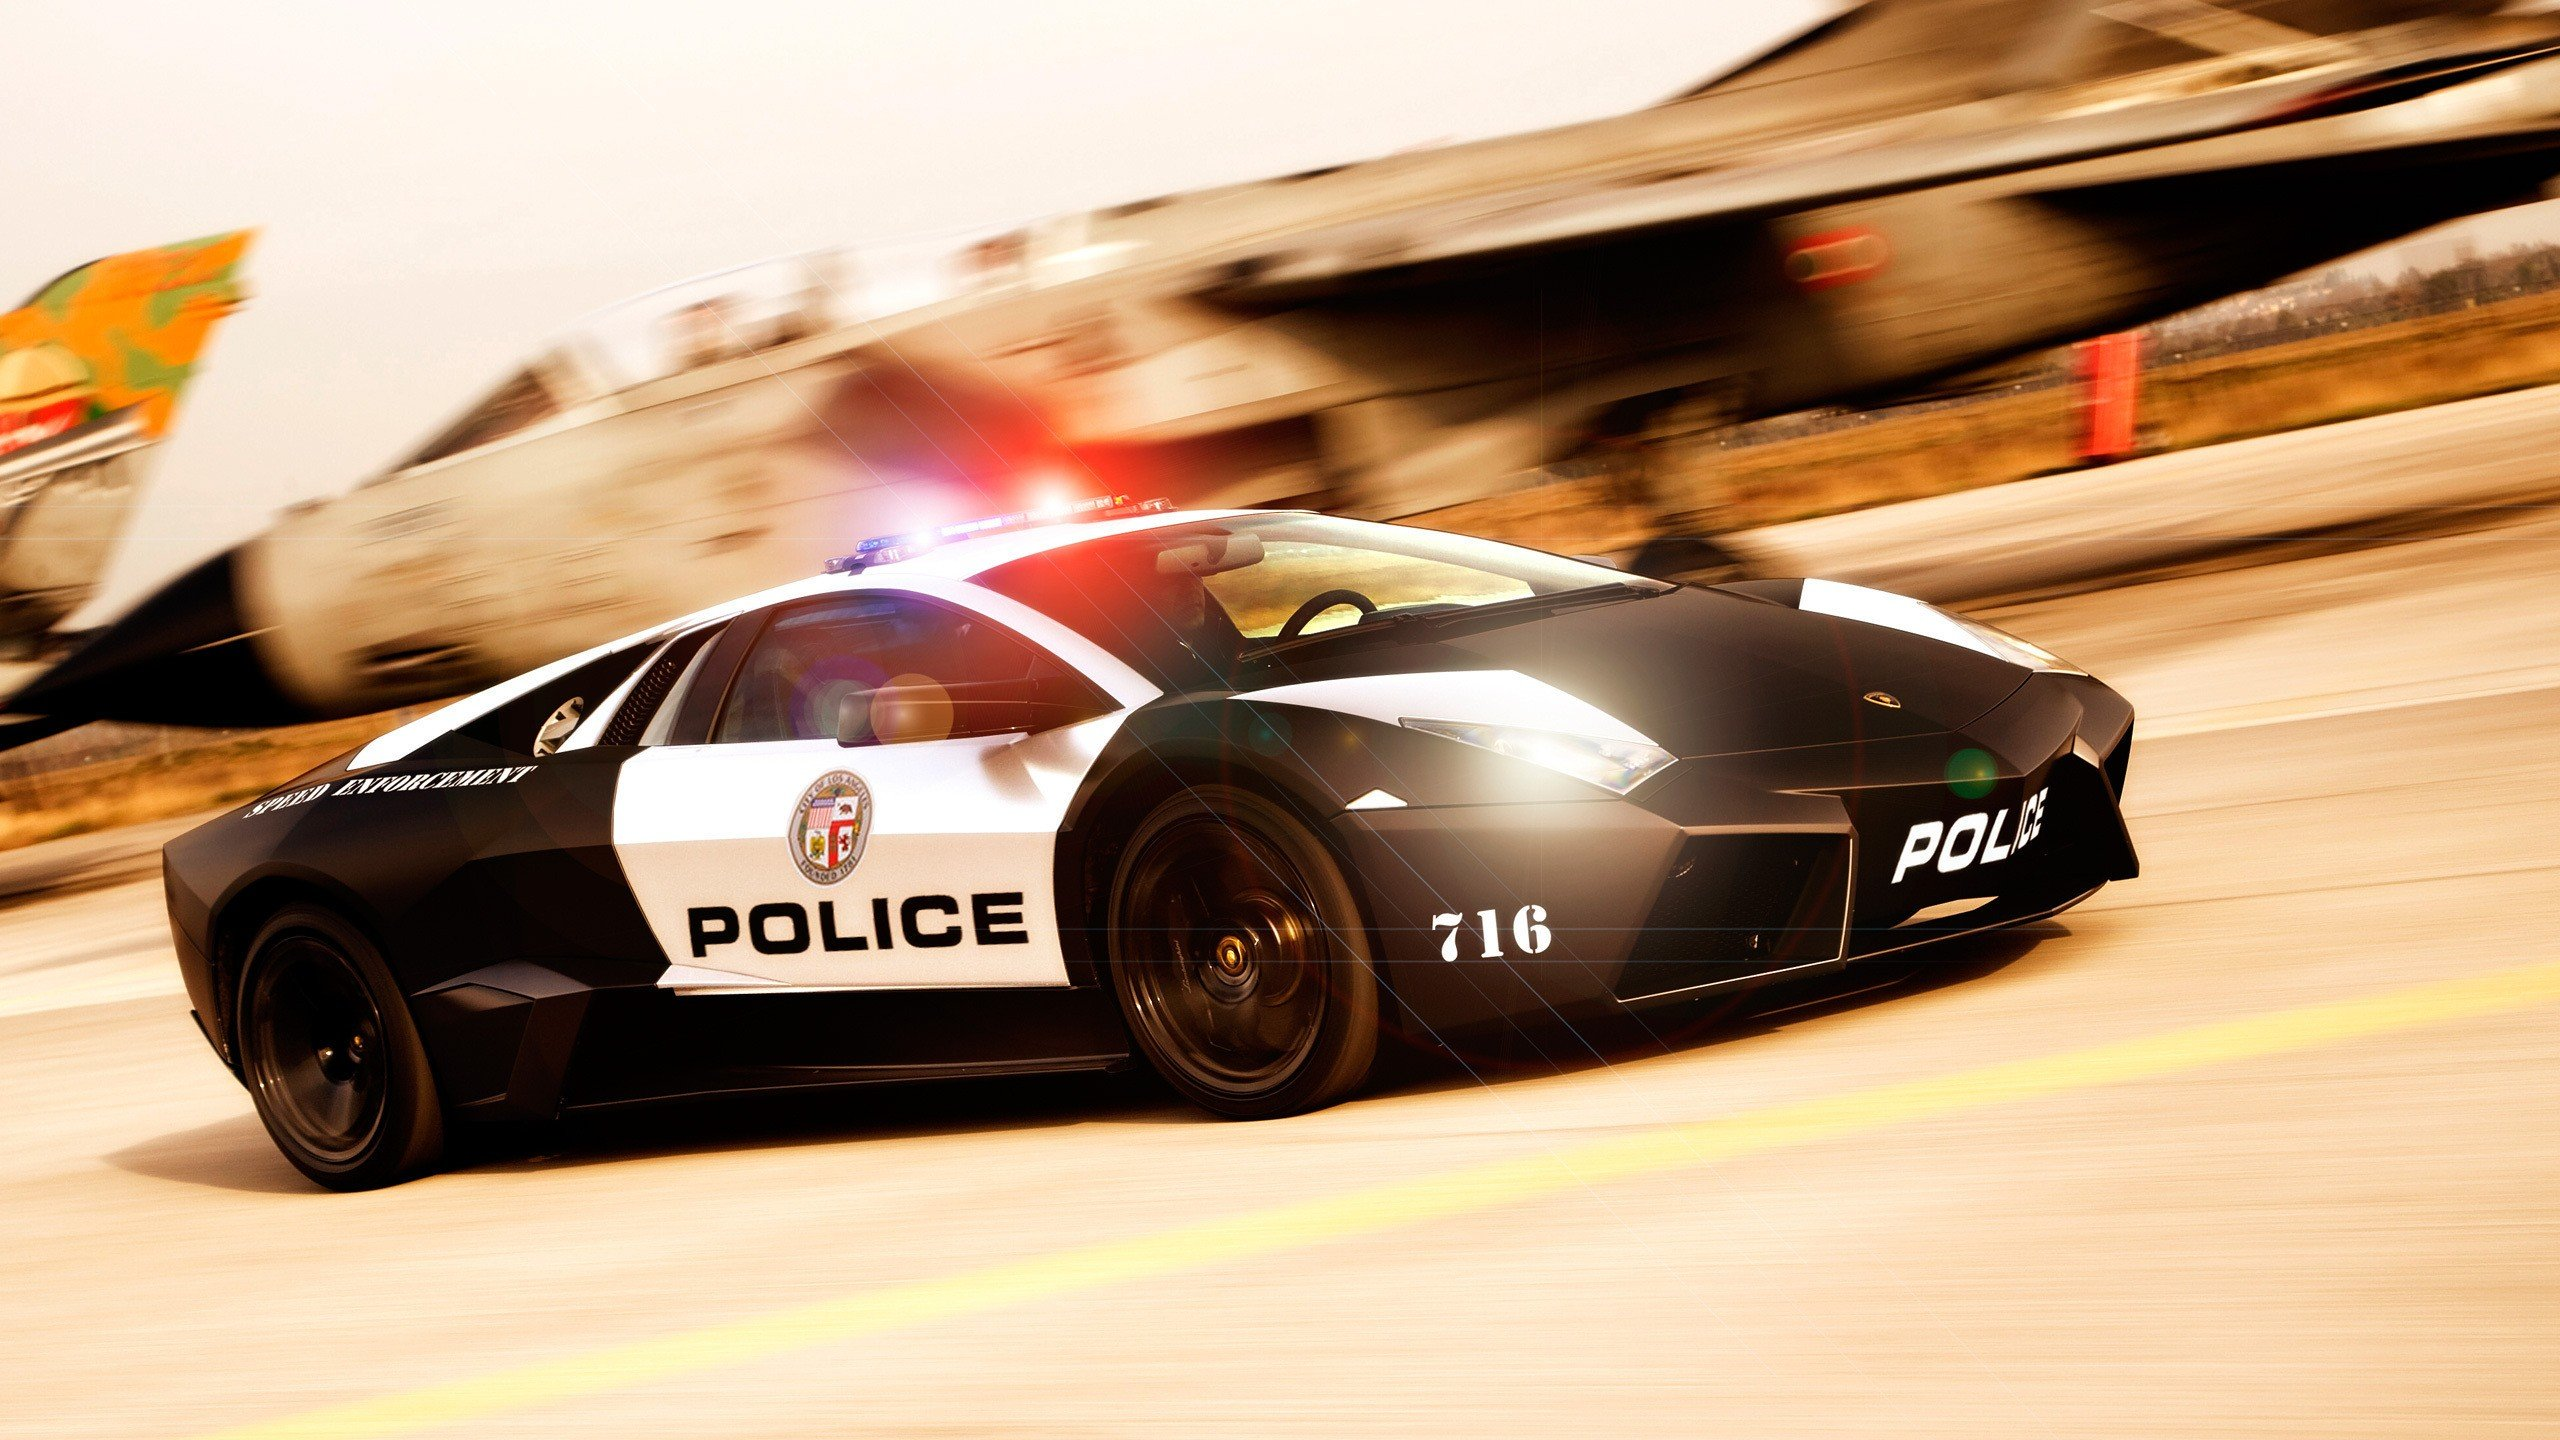 hd cool cop car wallpaper Car Pictures 2560x1440